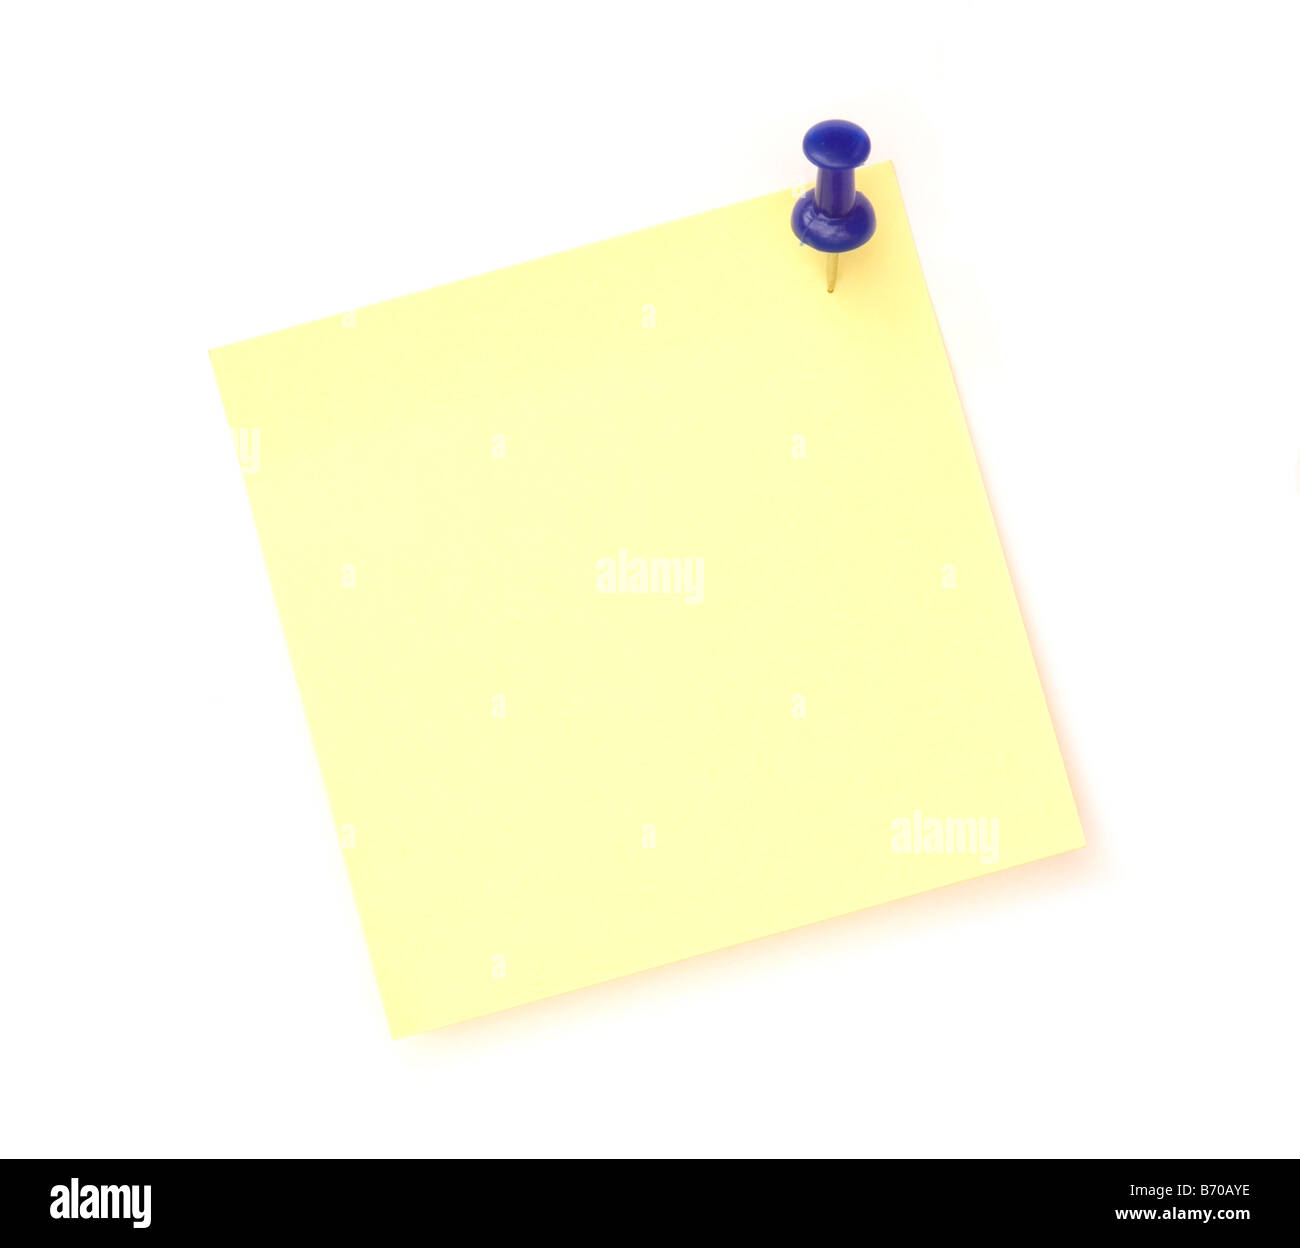 yellow note over white background with blue pin - Stock Image